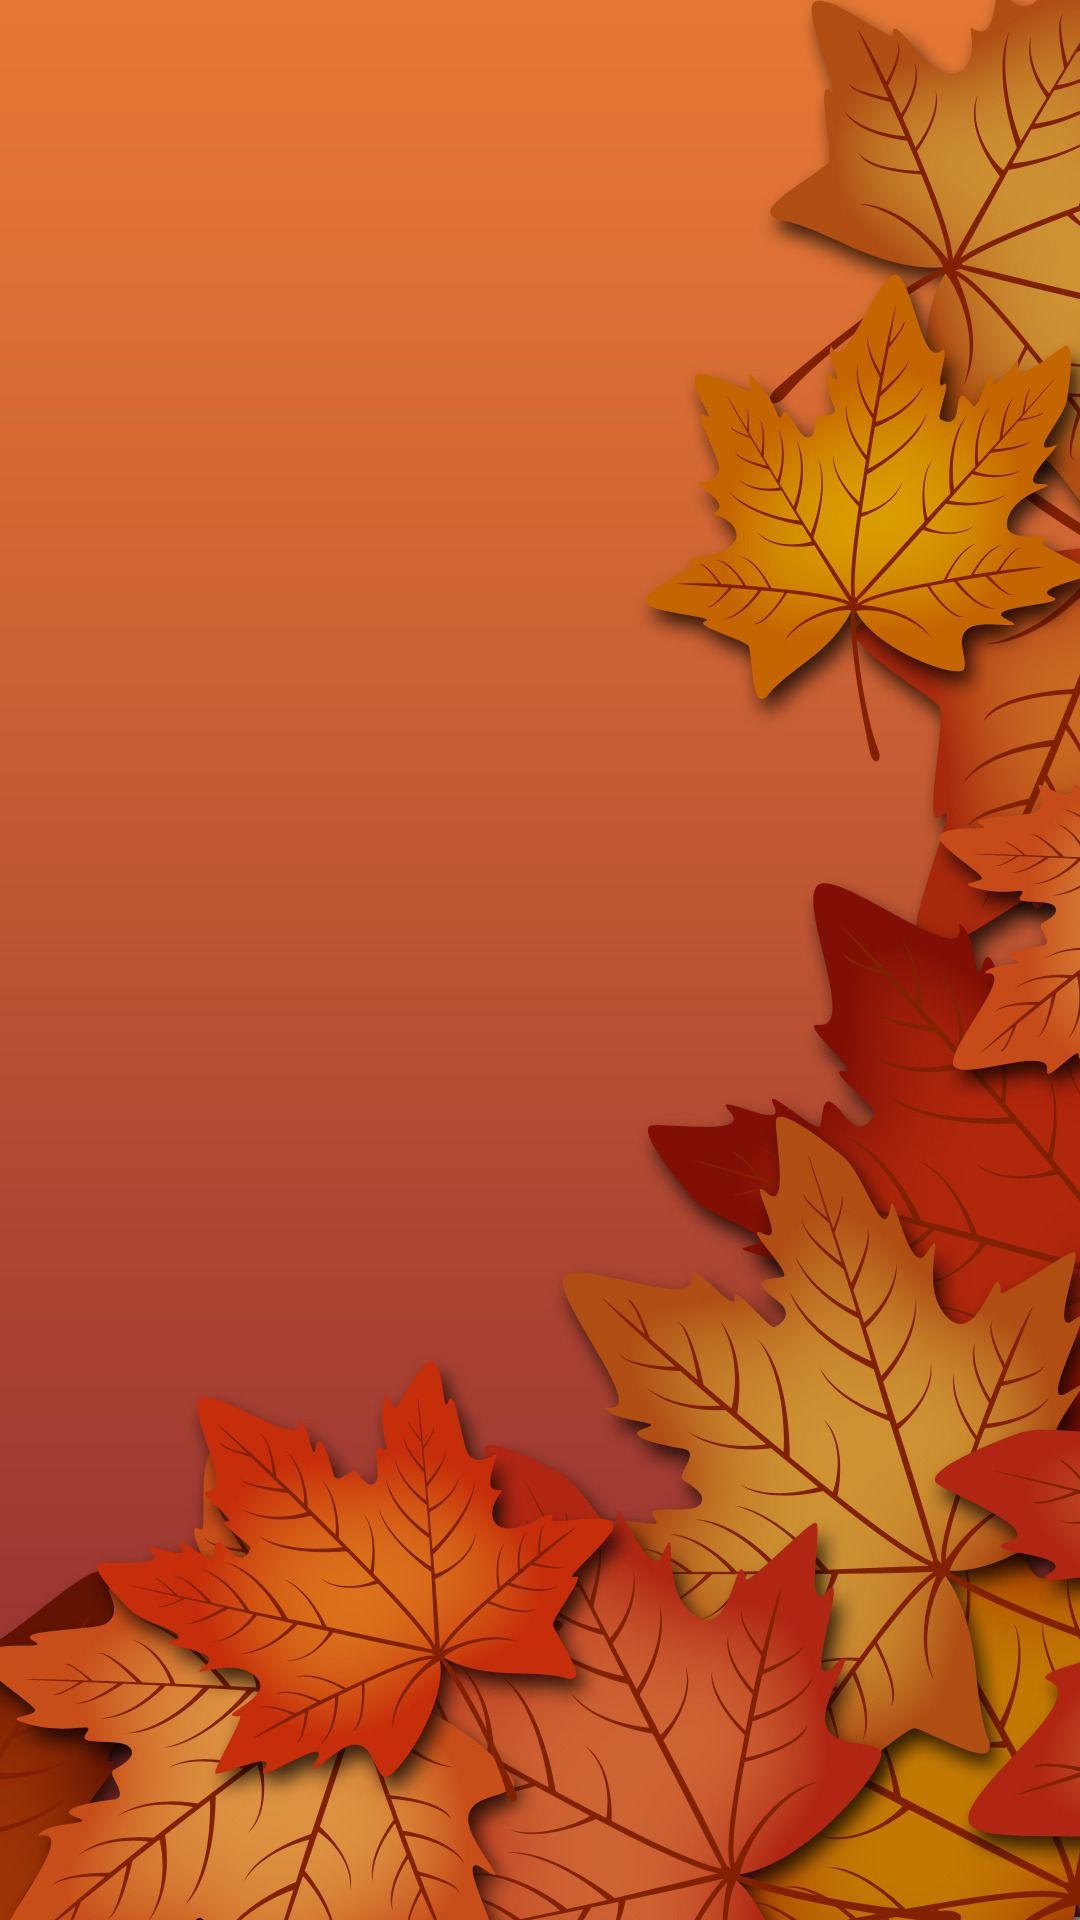 紅葉 Fall Wallpaper Leaf Wallpaper Iphone Wallpaper Fall